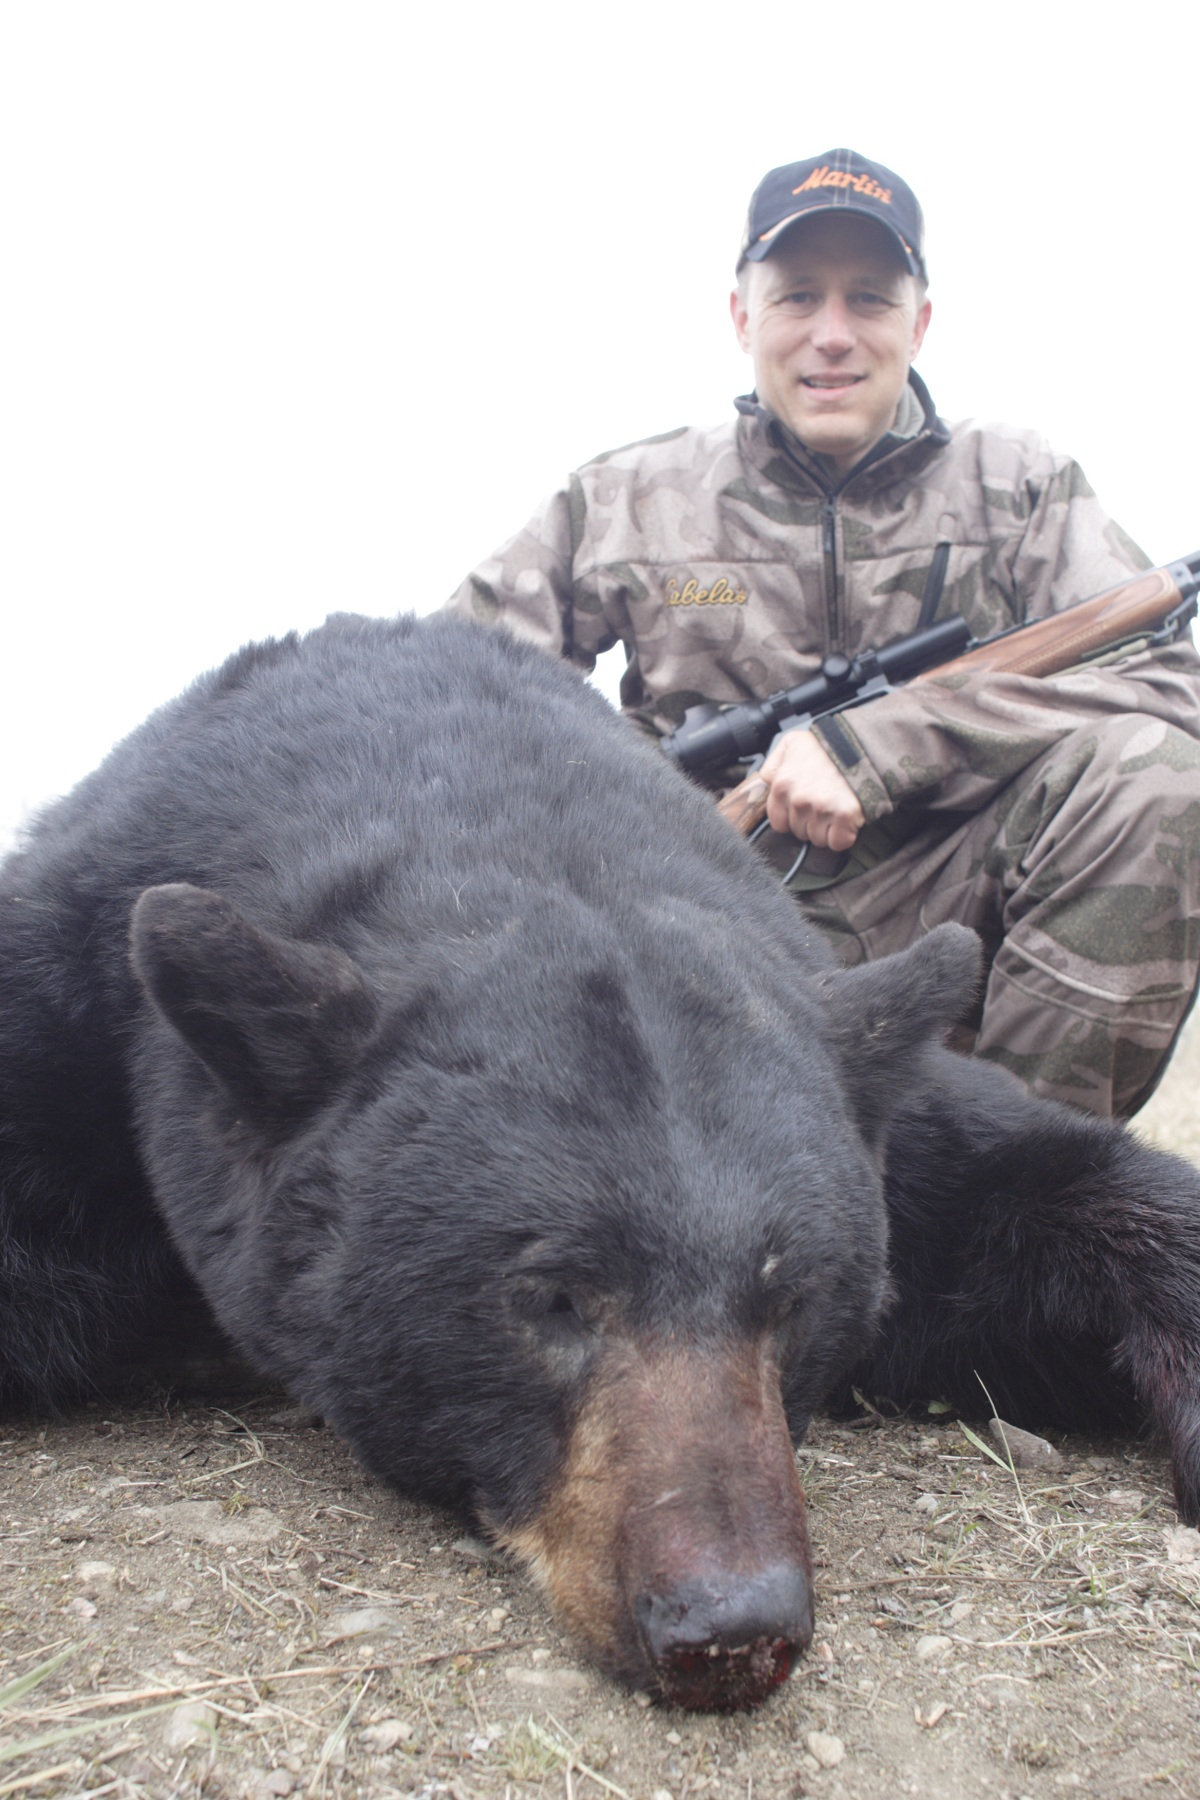 Top 10 Hunting Spots for Monster Black Bears | OutdoorHub Prince Of Wales Island Hunting on prince of wales bears, baranof island hunting, nelson island hunting, prince of wales hunting guide, victoria island hunting, prince edward island hunting, prince of wales alaska fishing, prince of wales road map, prince of wales ak wolves,